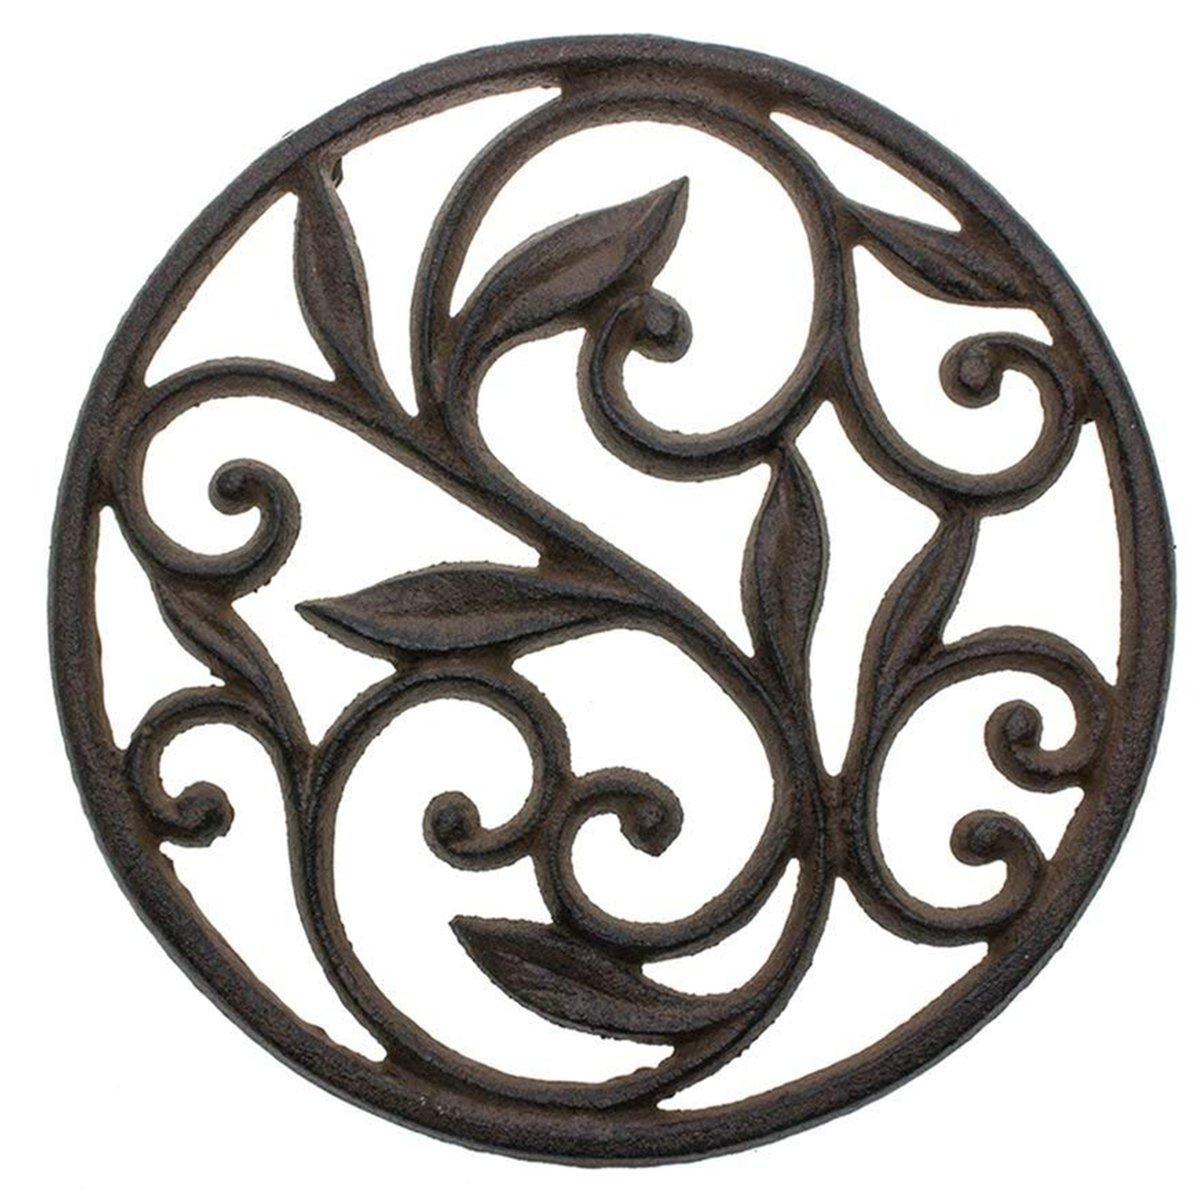 "Cast Iron Trivet - Round with Vintage Pattern - Decorative Cast Iron Trivet For Kitchen Or Dining Table - 7.7"" Diameter - Rust Brown Color - With Rubber Pegs by Comfify"